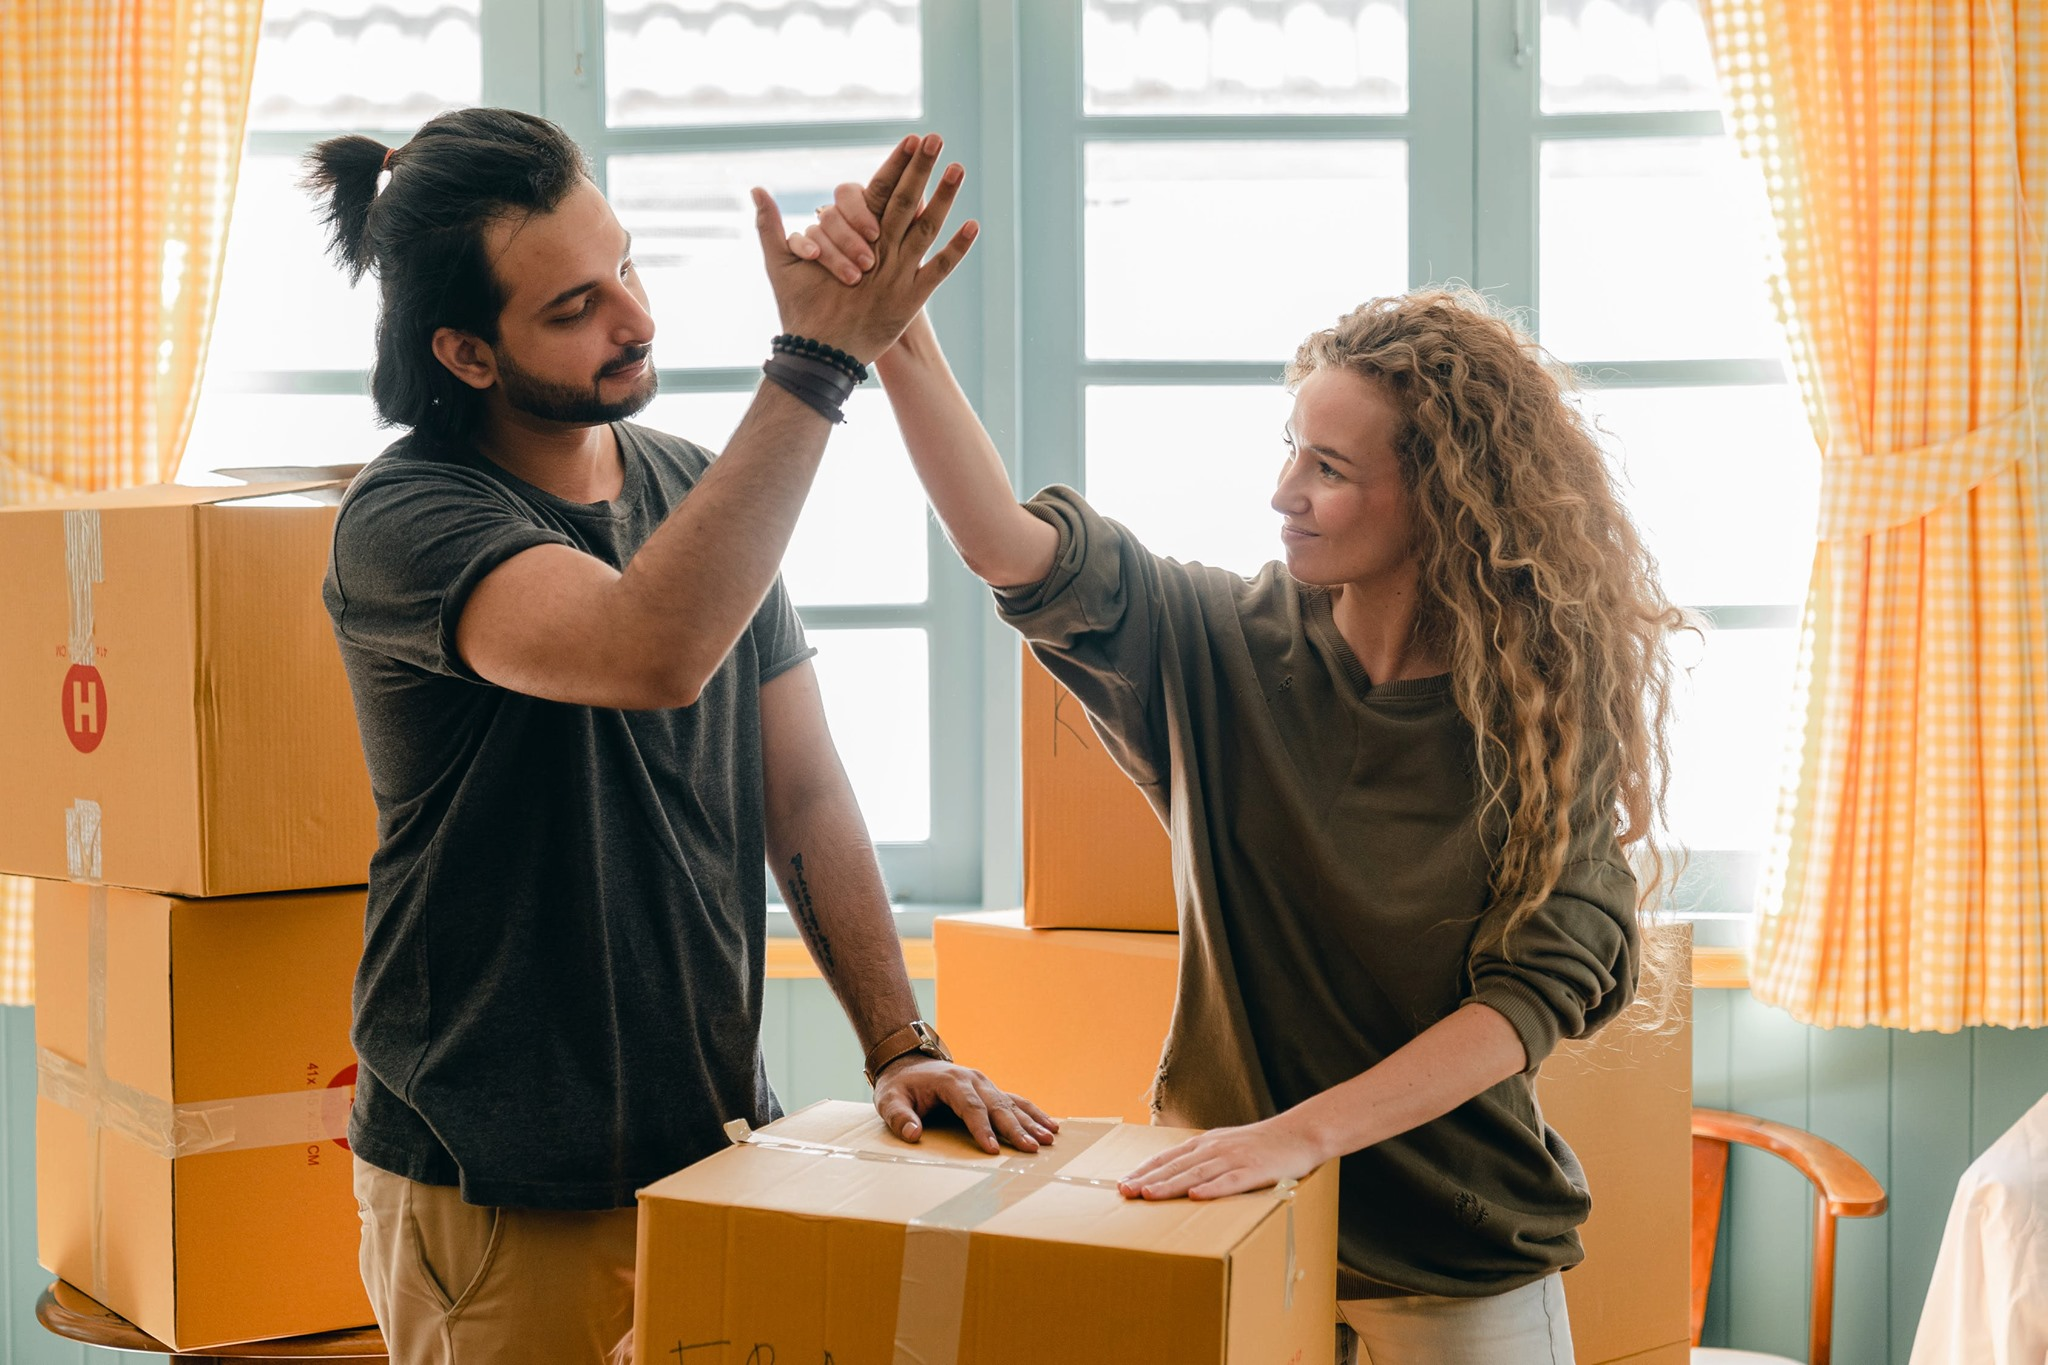 photo of two people high fiving